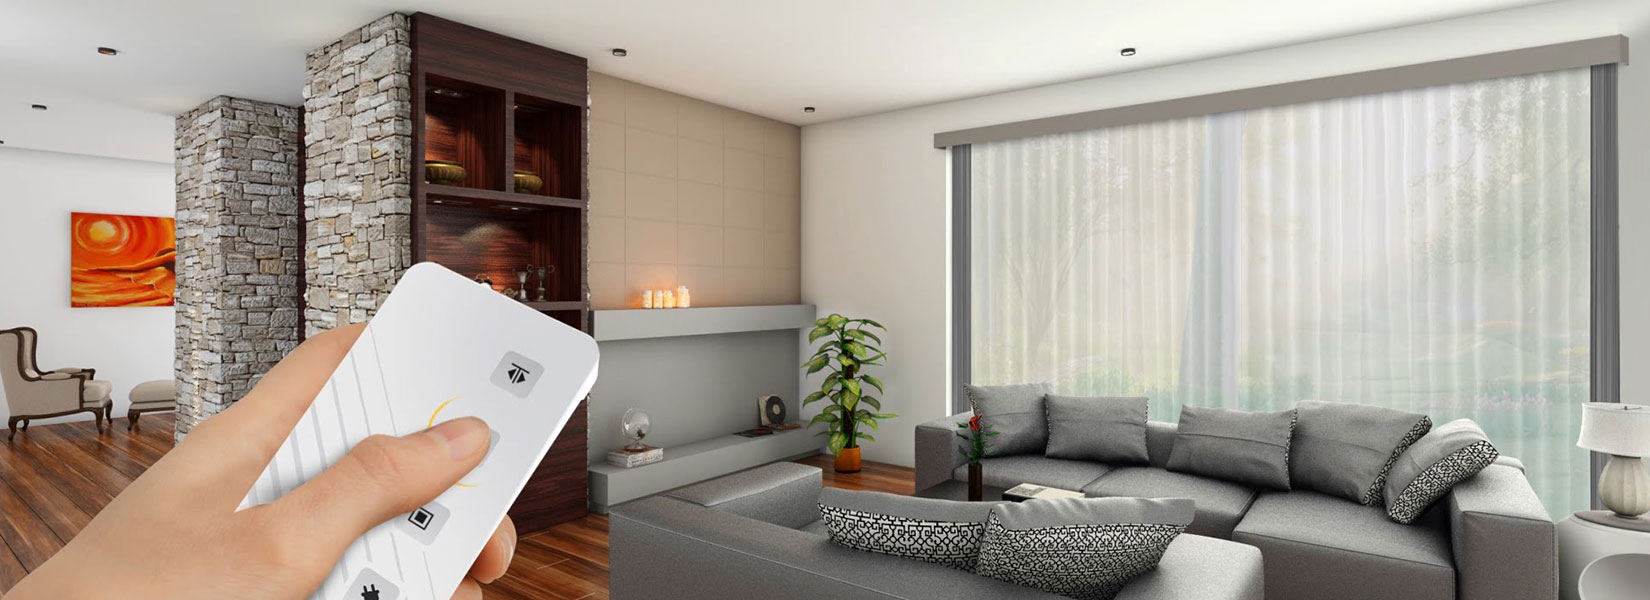 Control-it Automated Blinds for your home